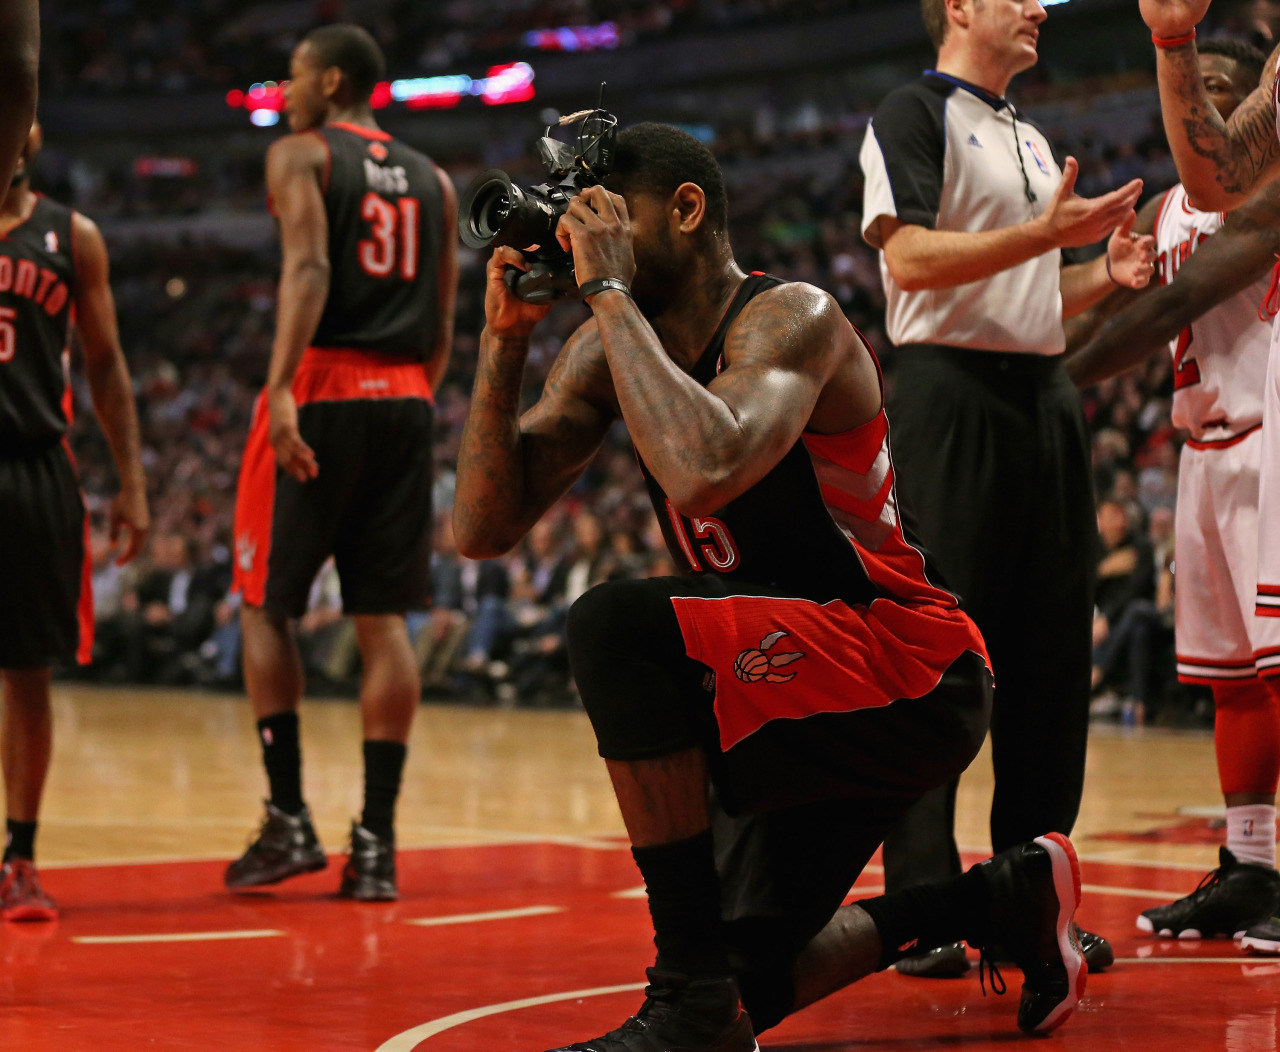 Amir Johnson has a new career? Great gem from USA Today Sports on how a photographer accidentally dropped his camera on the court — and the Raptors forward picked it up and took a few photos.